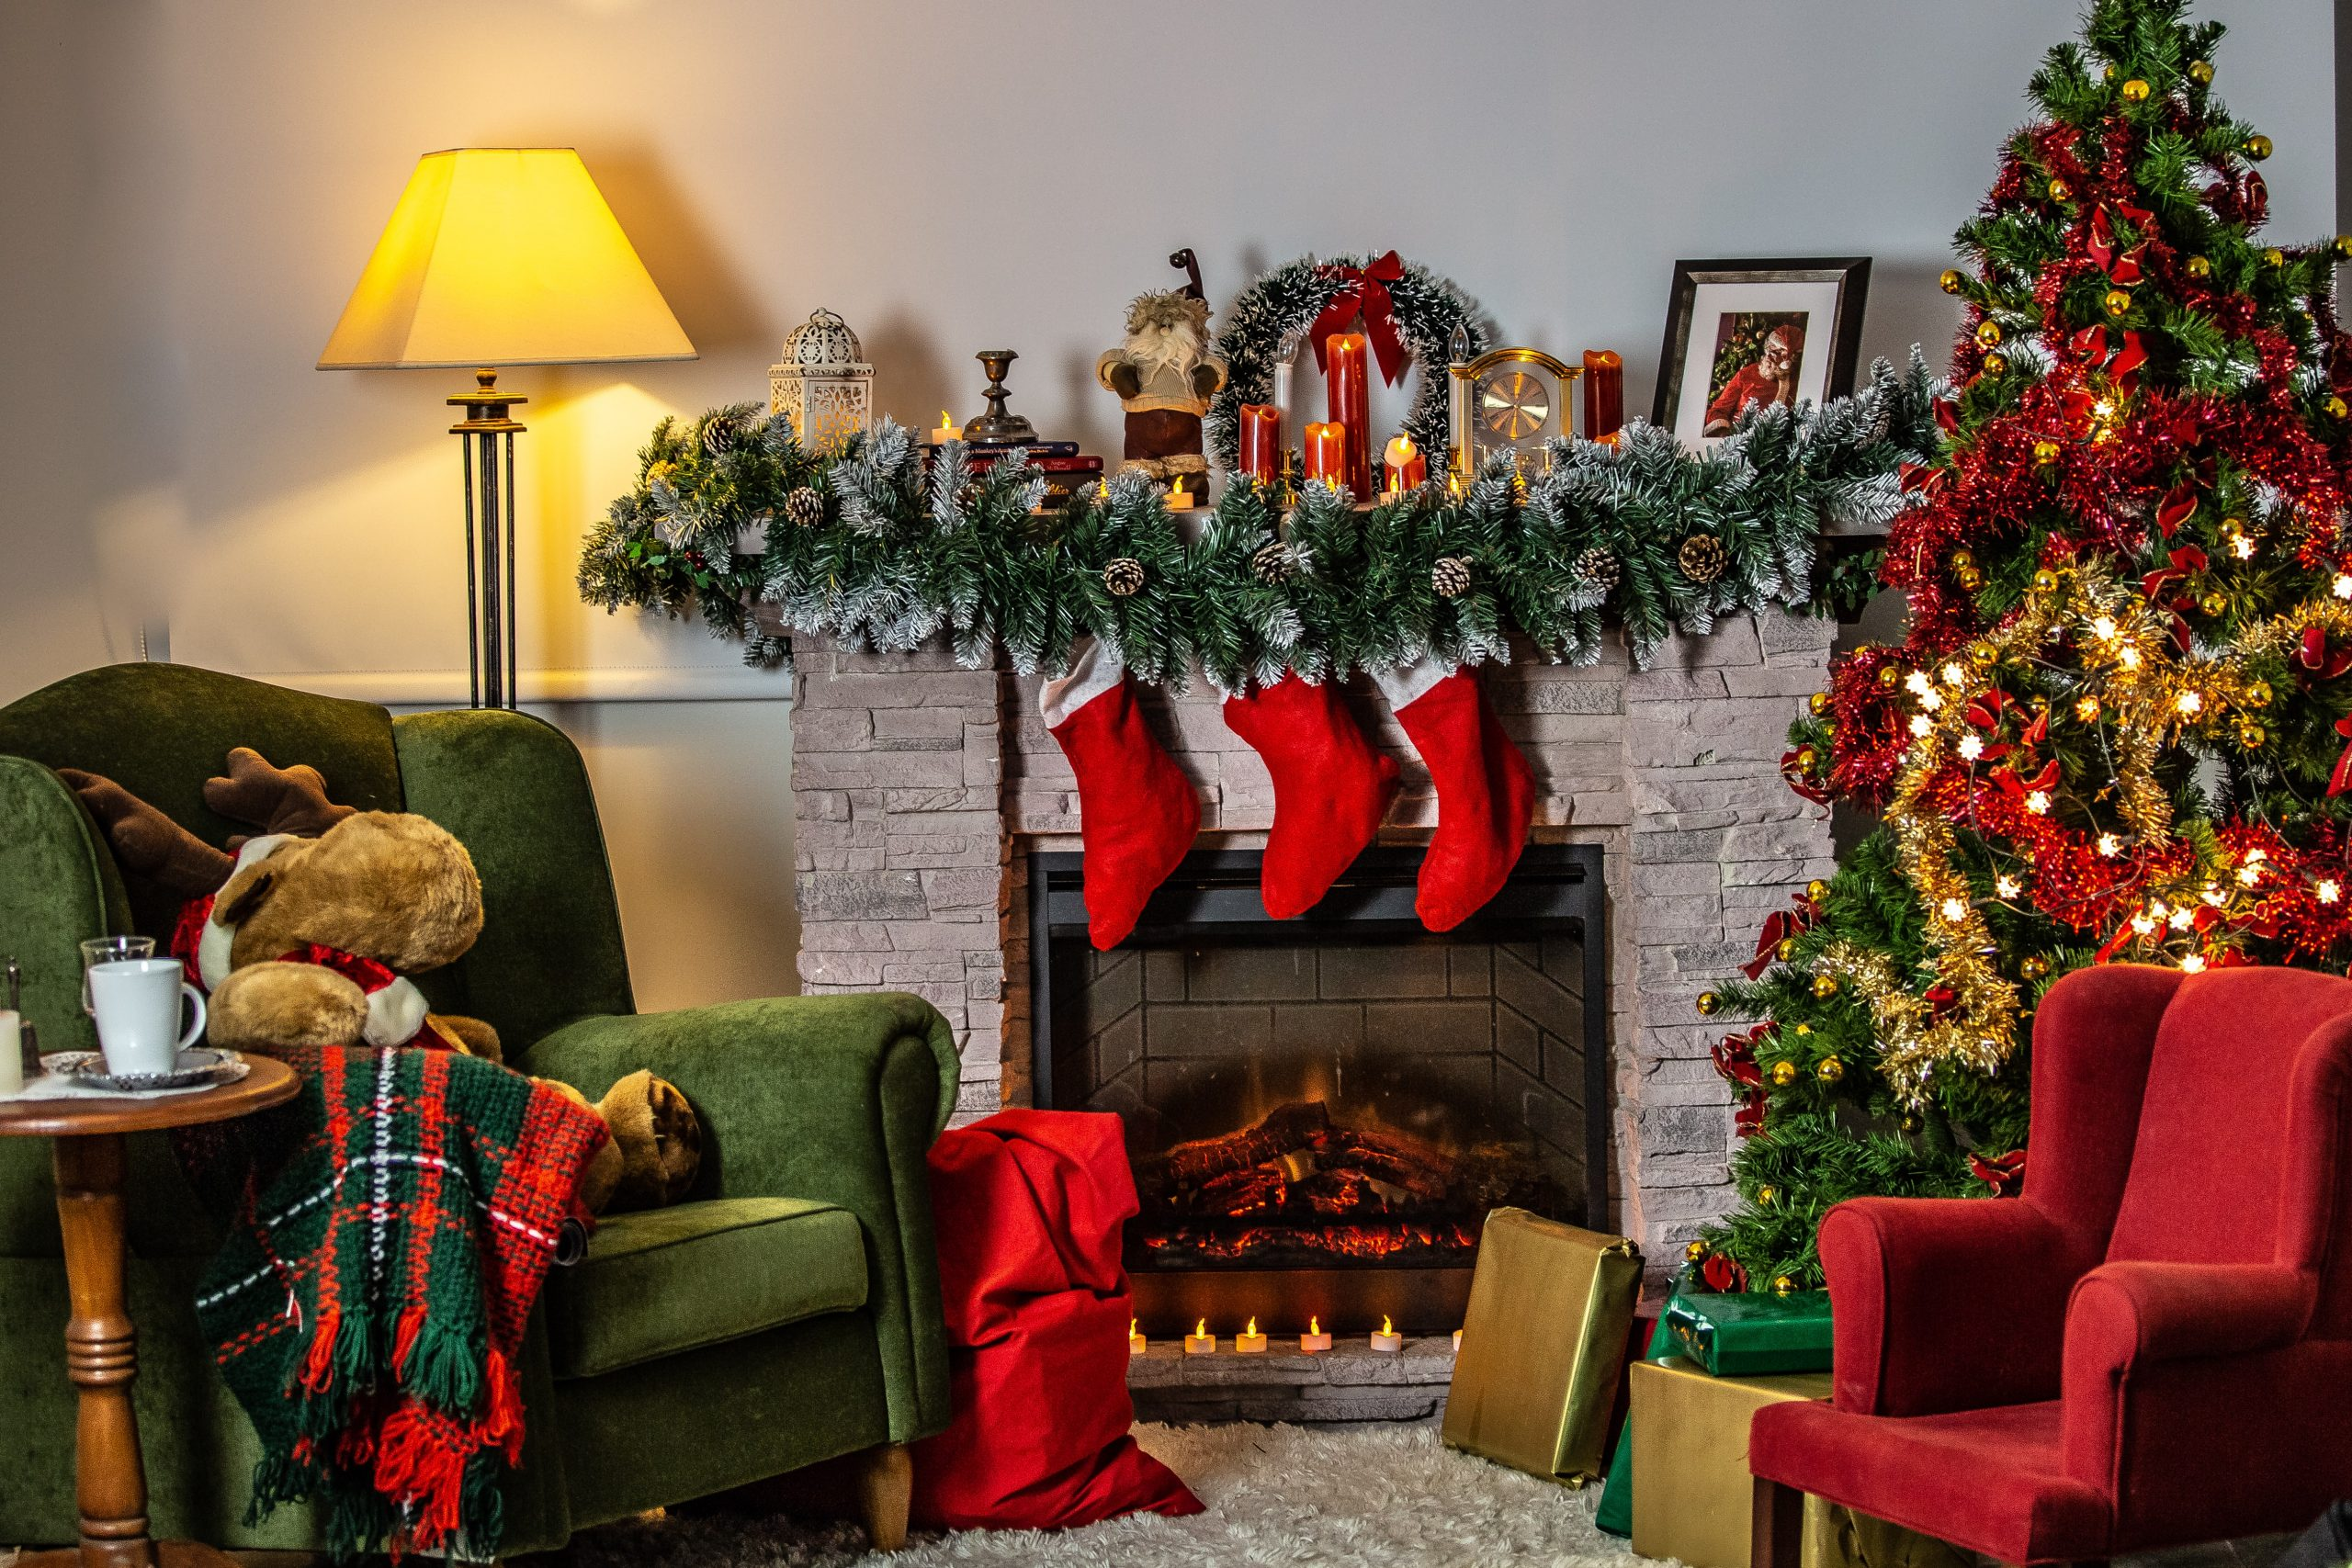 99 Percent Lifestyle 2020 Holiday Gift Guide